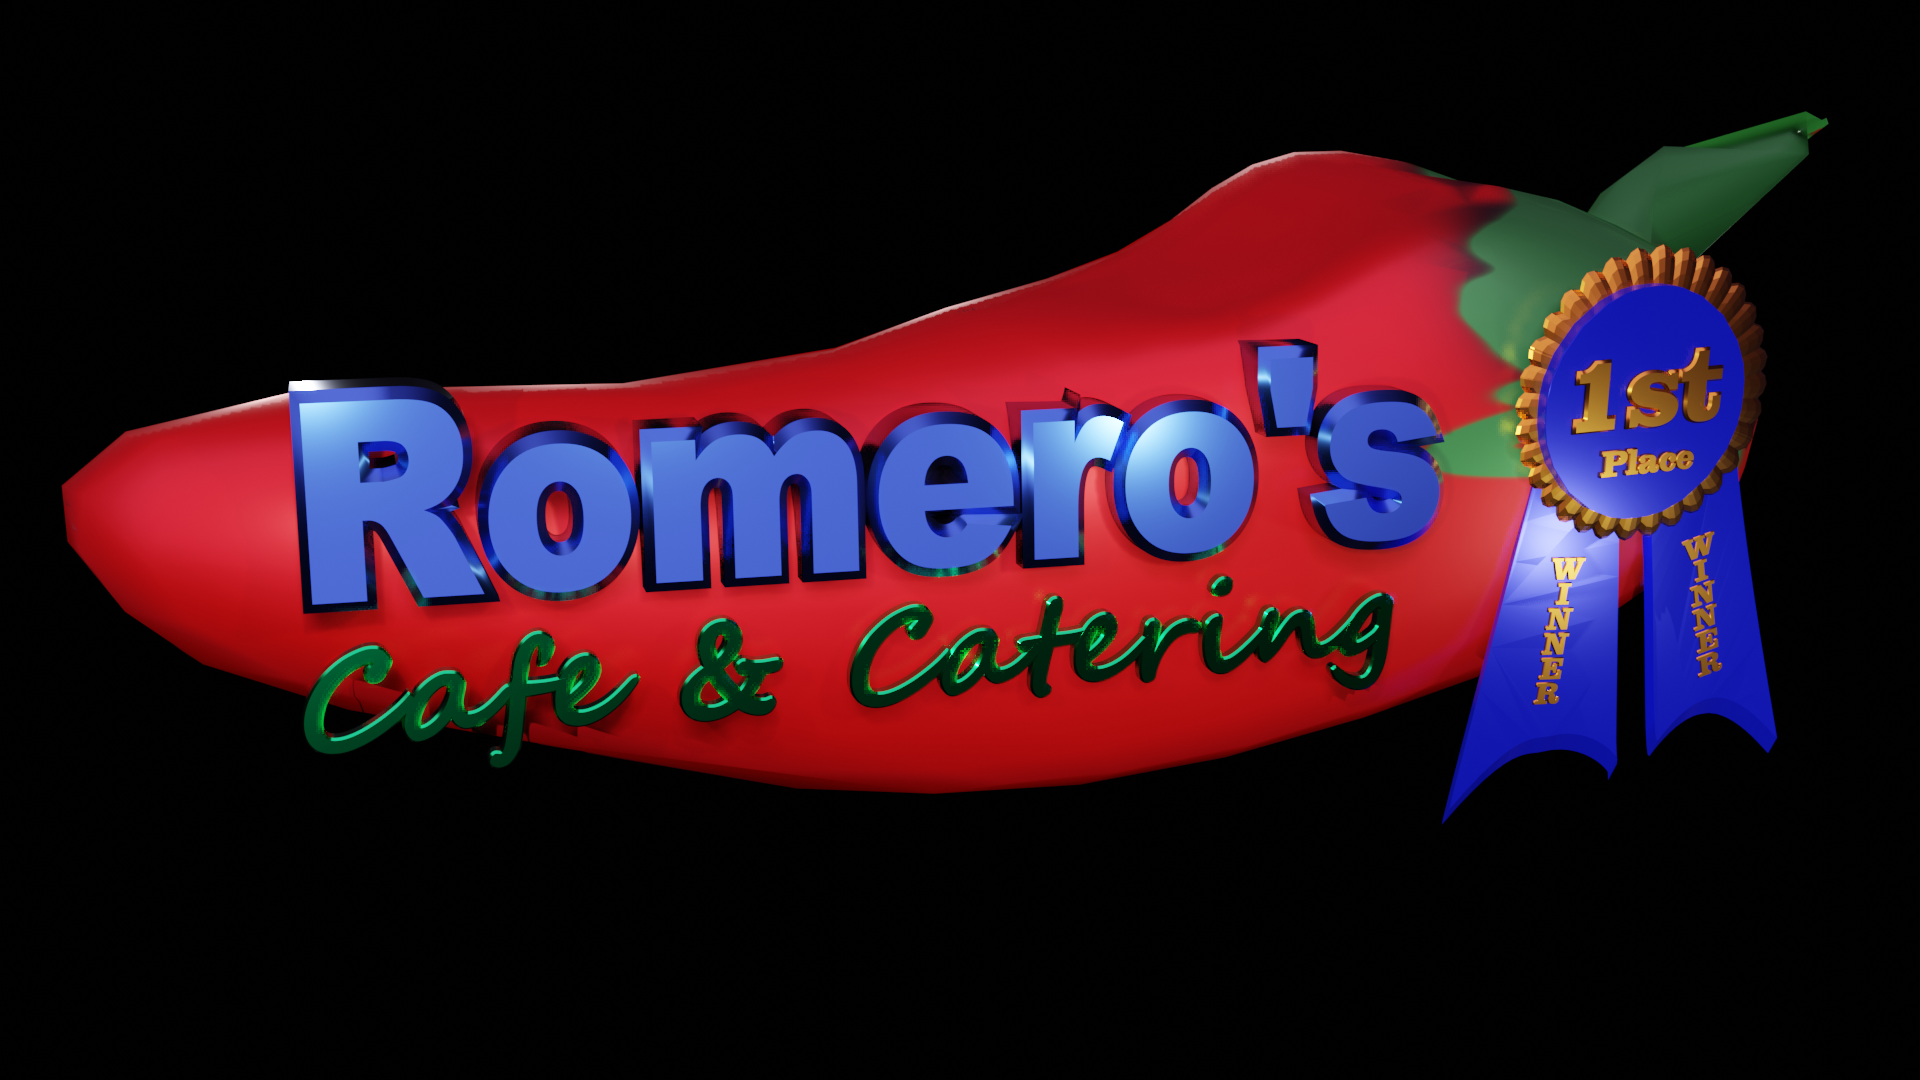 Romero's Cafe & Catering 3d Holographic Logo